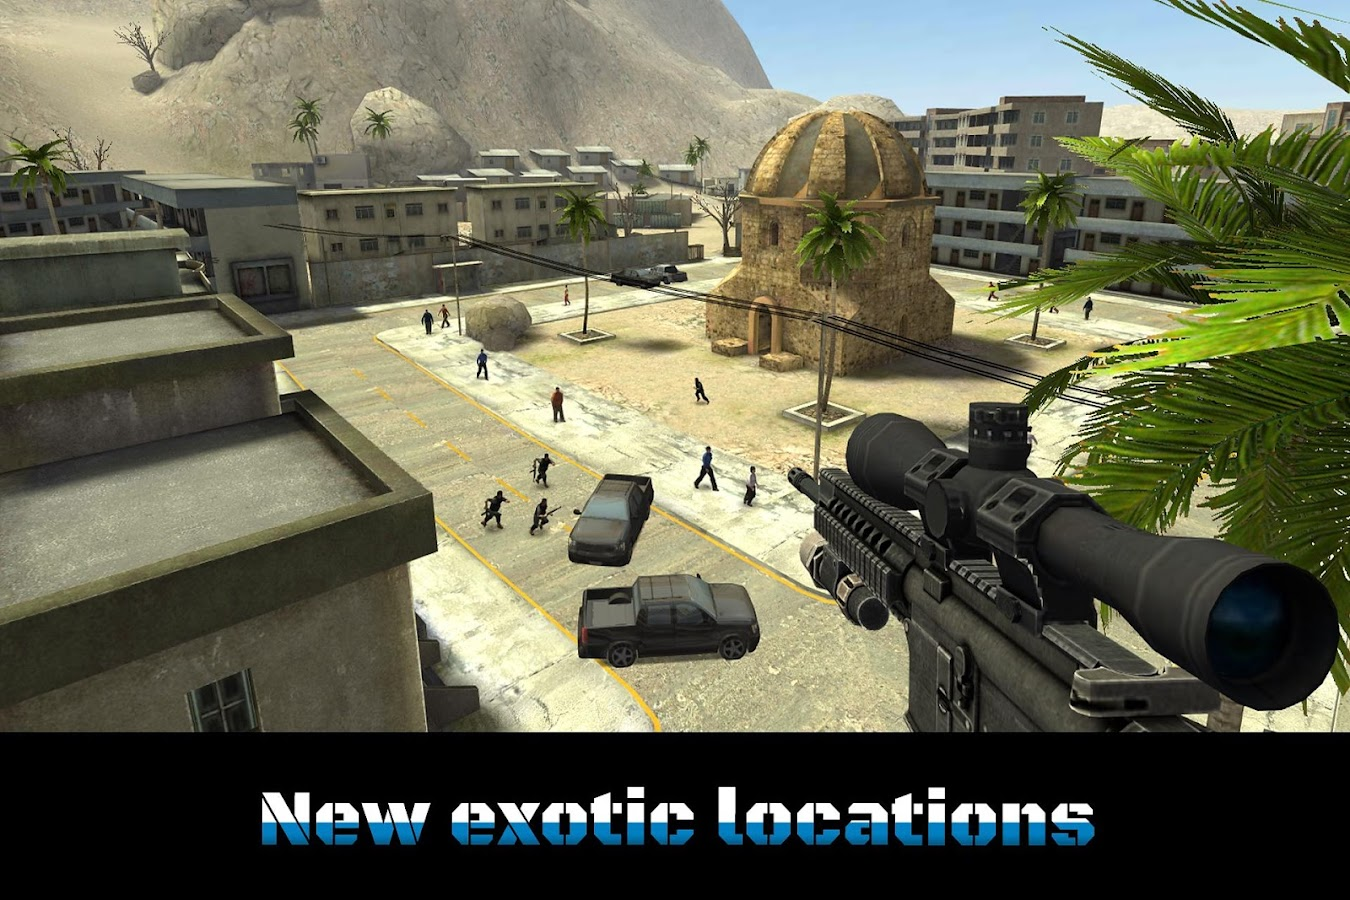 Sniper Ops - 3D Shooting Game Screenshot 17